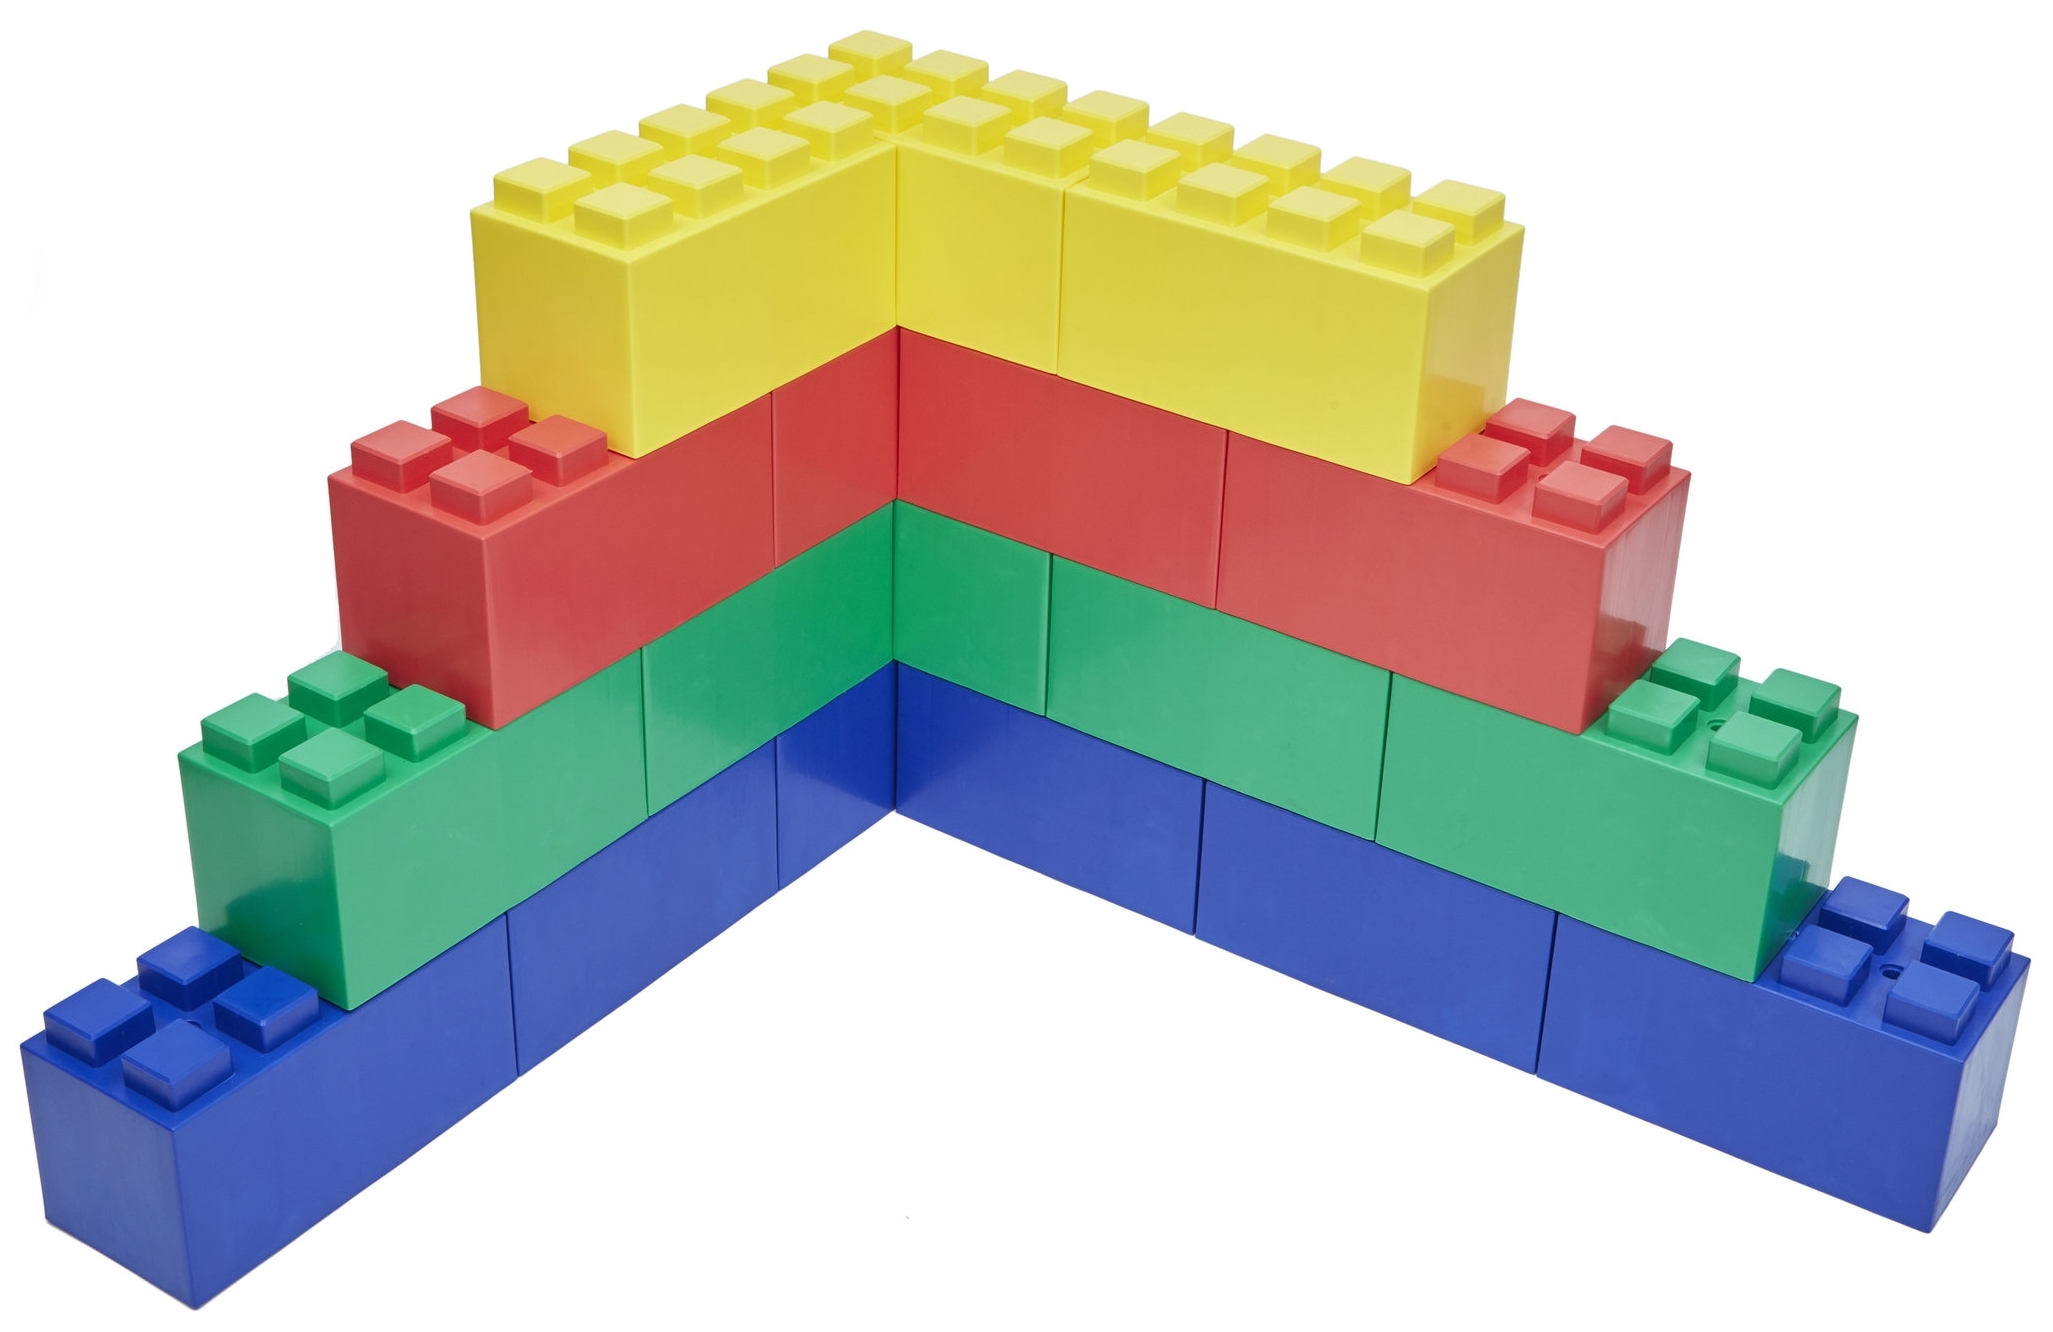 Stagger blocks and change directions as needed